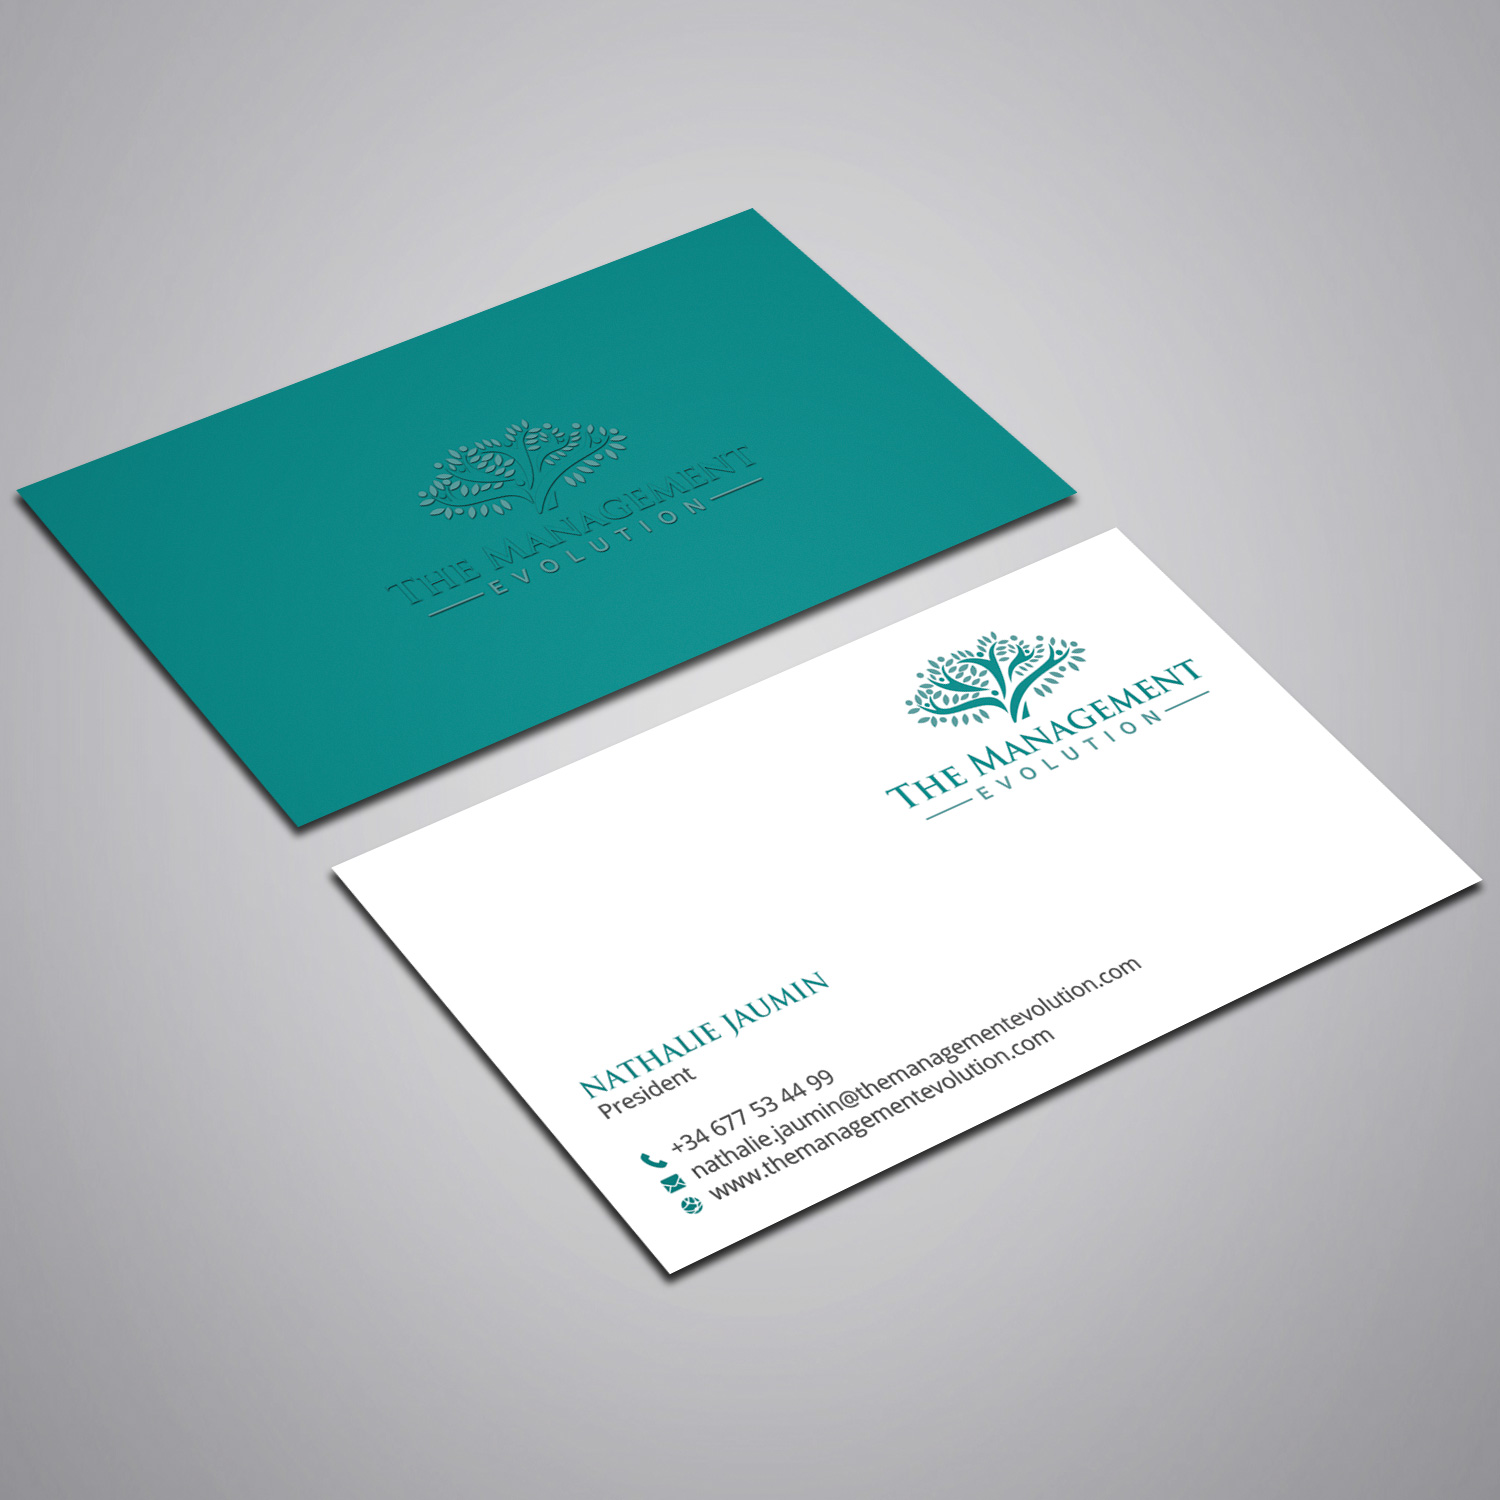 Elegant modern management consulting business card design for business card design by rightd for training tailor sl design 14272819 reheart Image collections